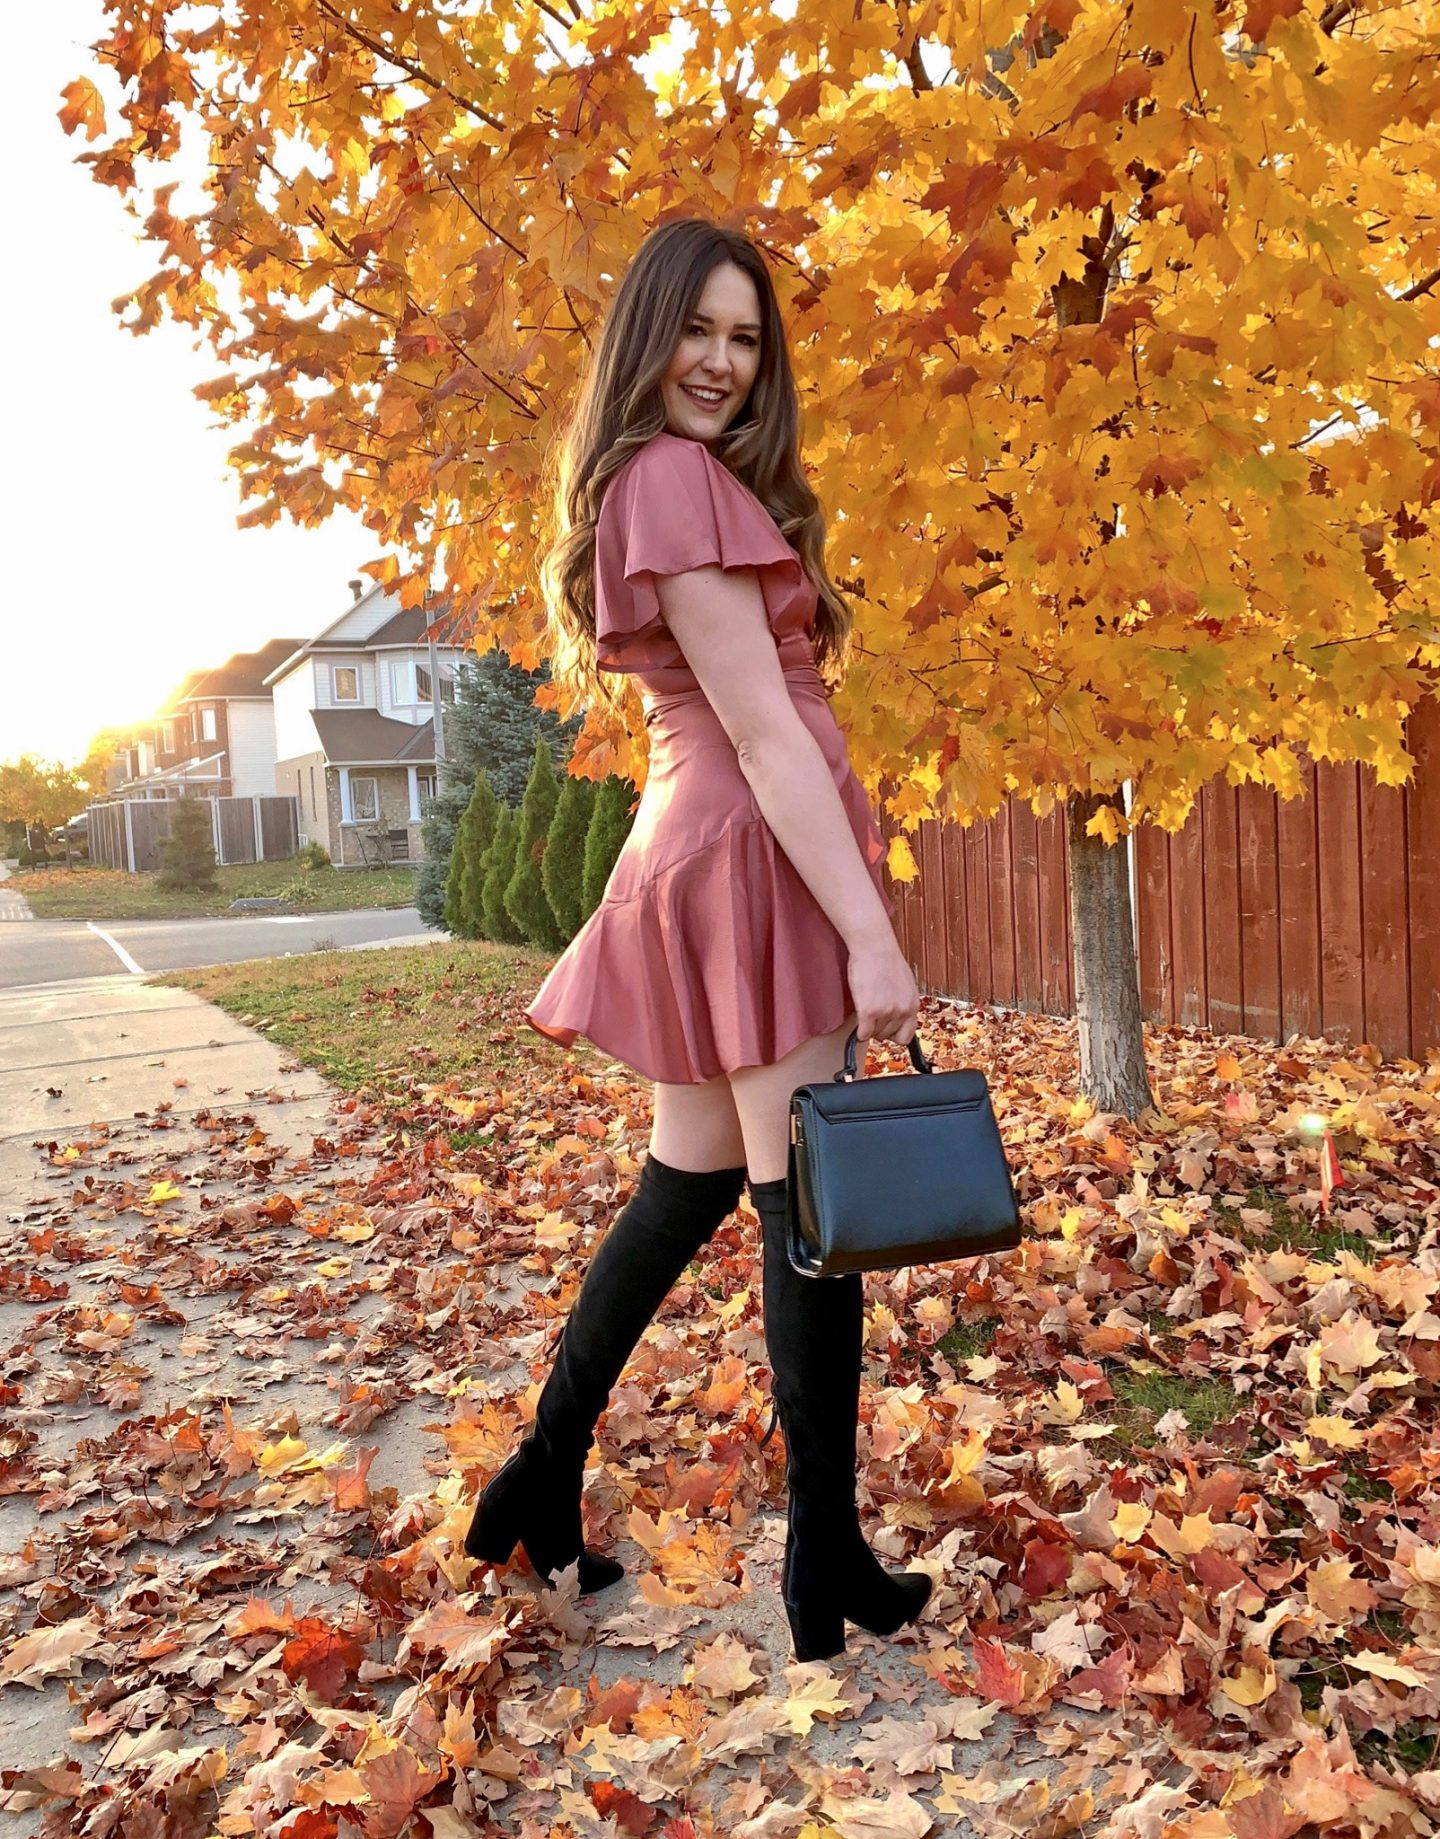 styling over-the-knee boots | OTK boots| boots| fall fashion| mash elle fashion blogger